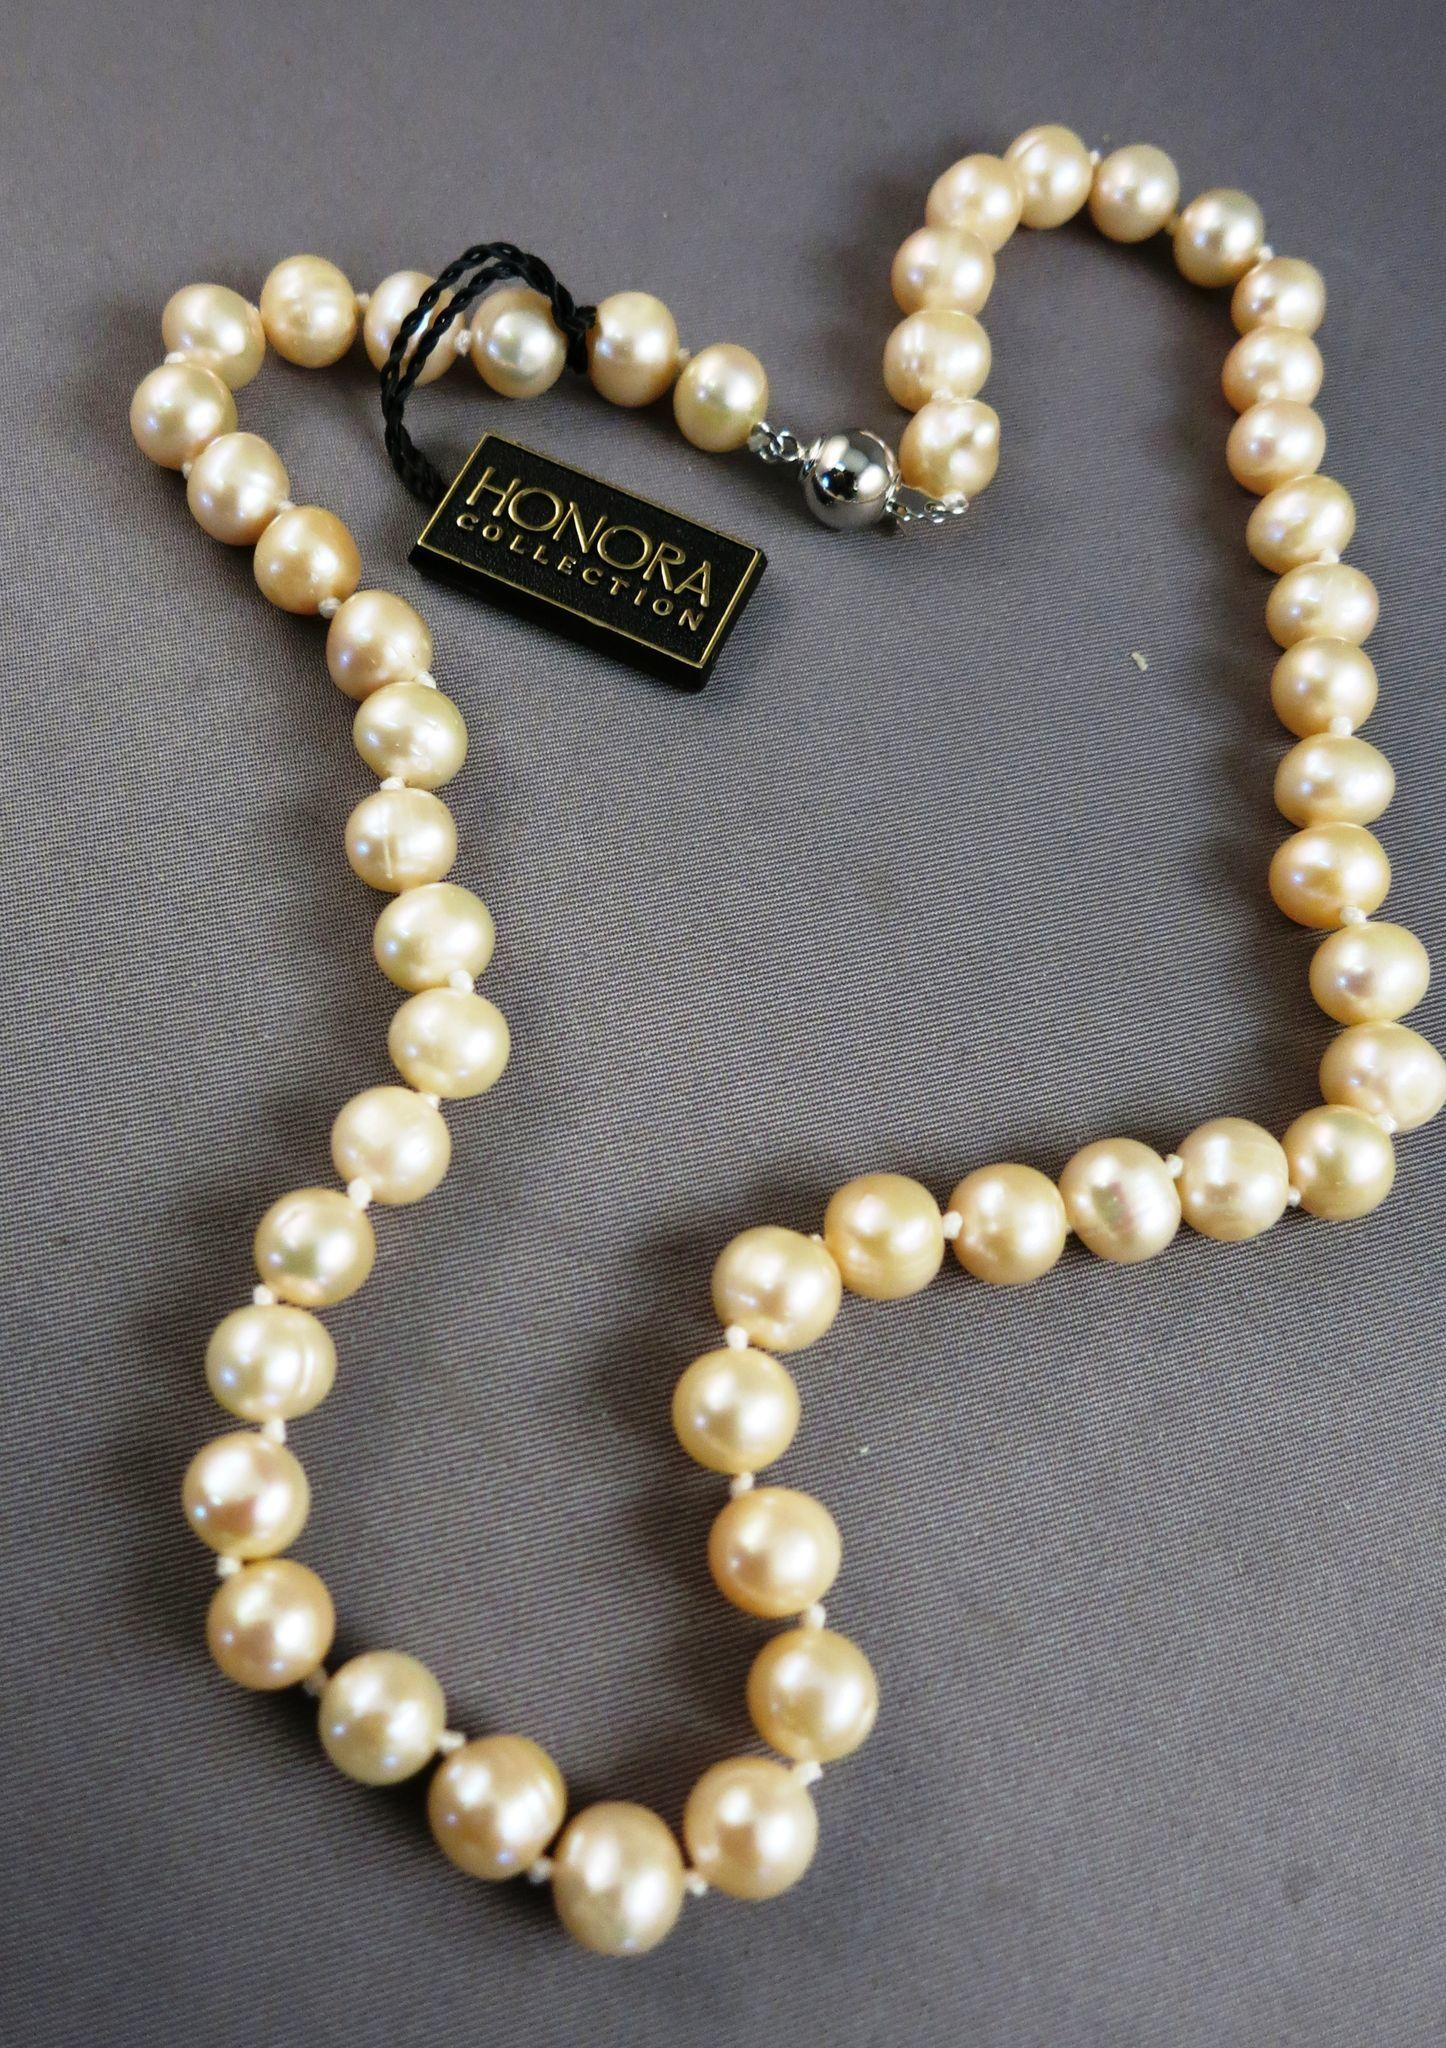 VINTAGE Honora Knotted String of Pinkish Freshwater Pearls  18  Inches